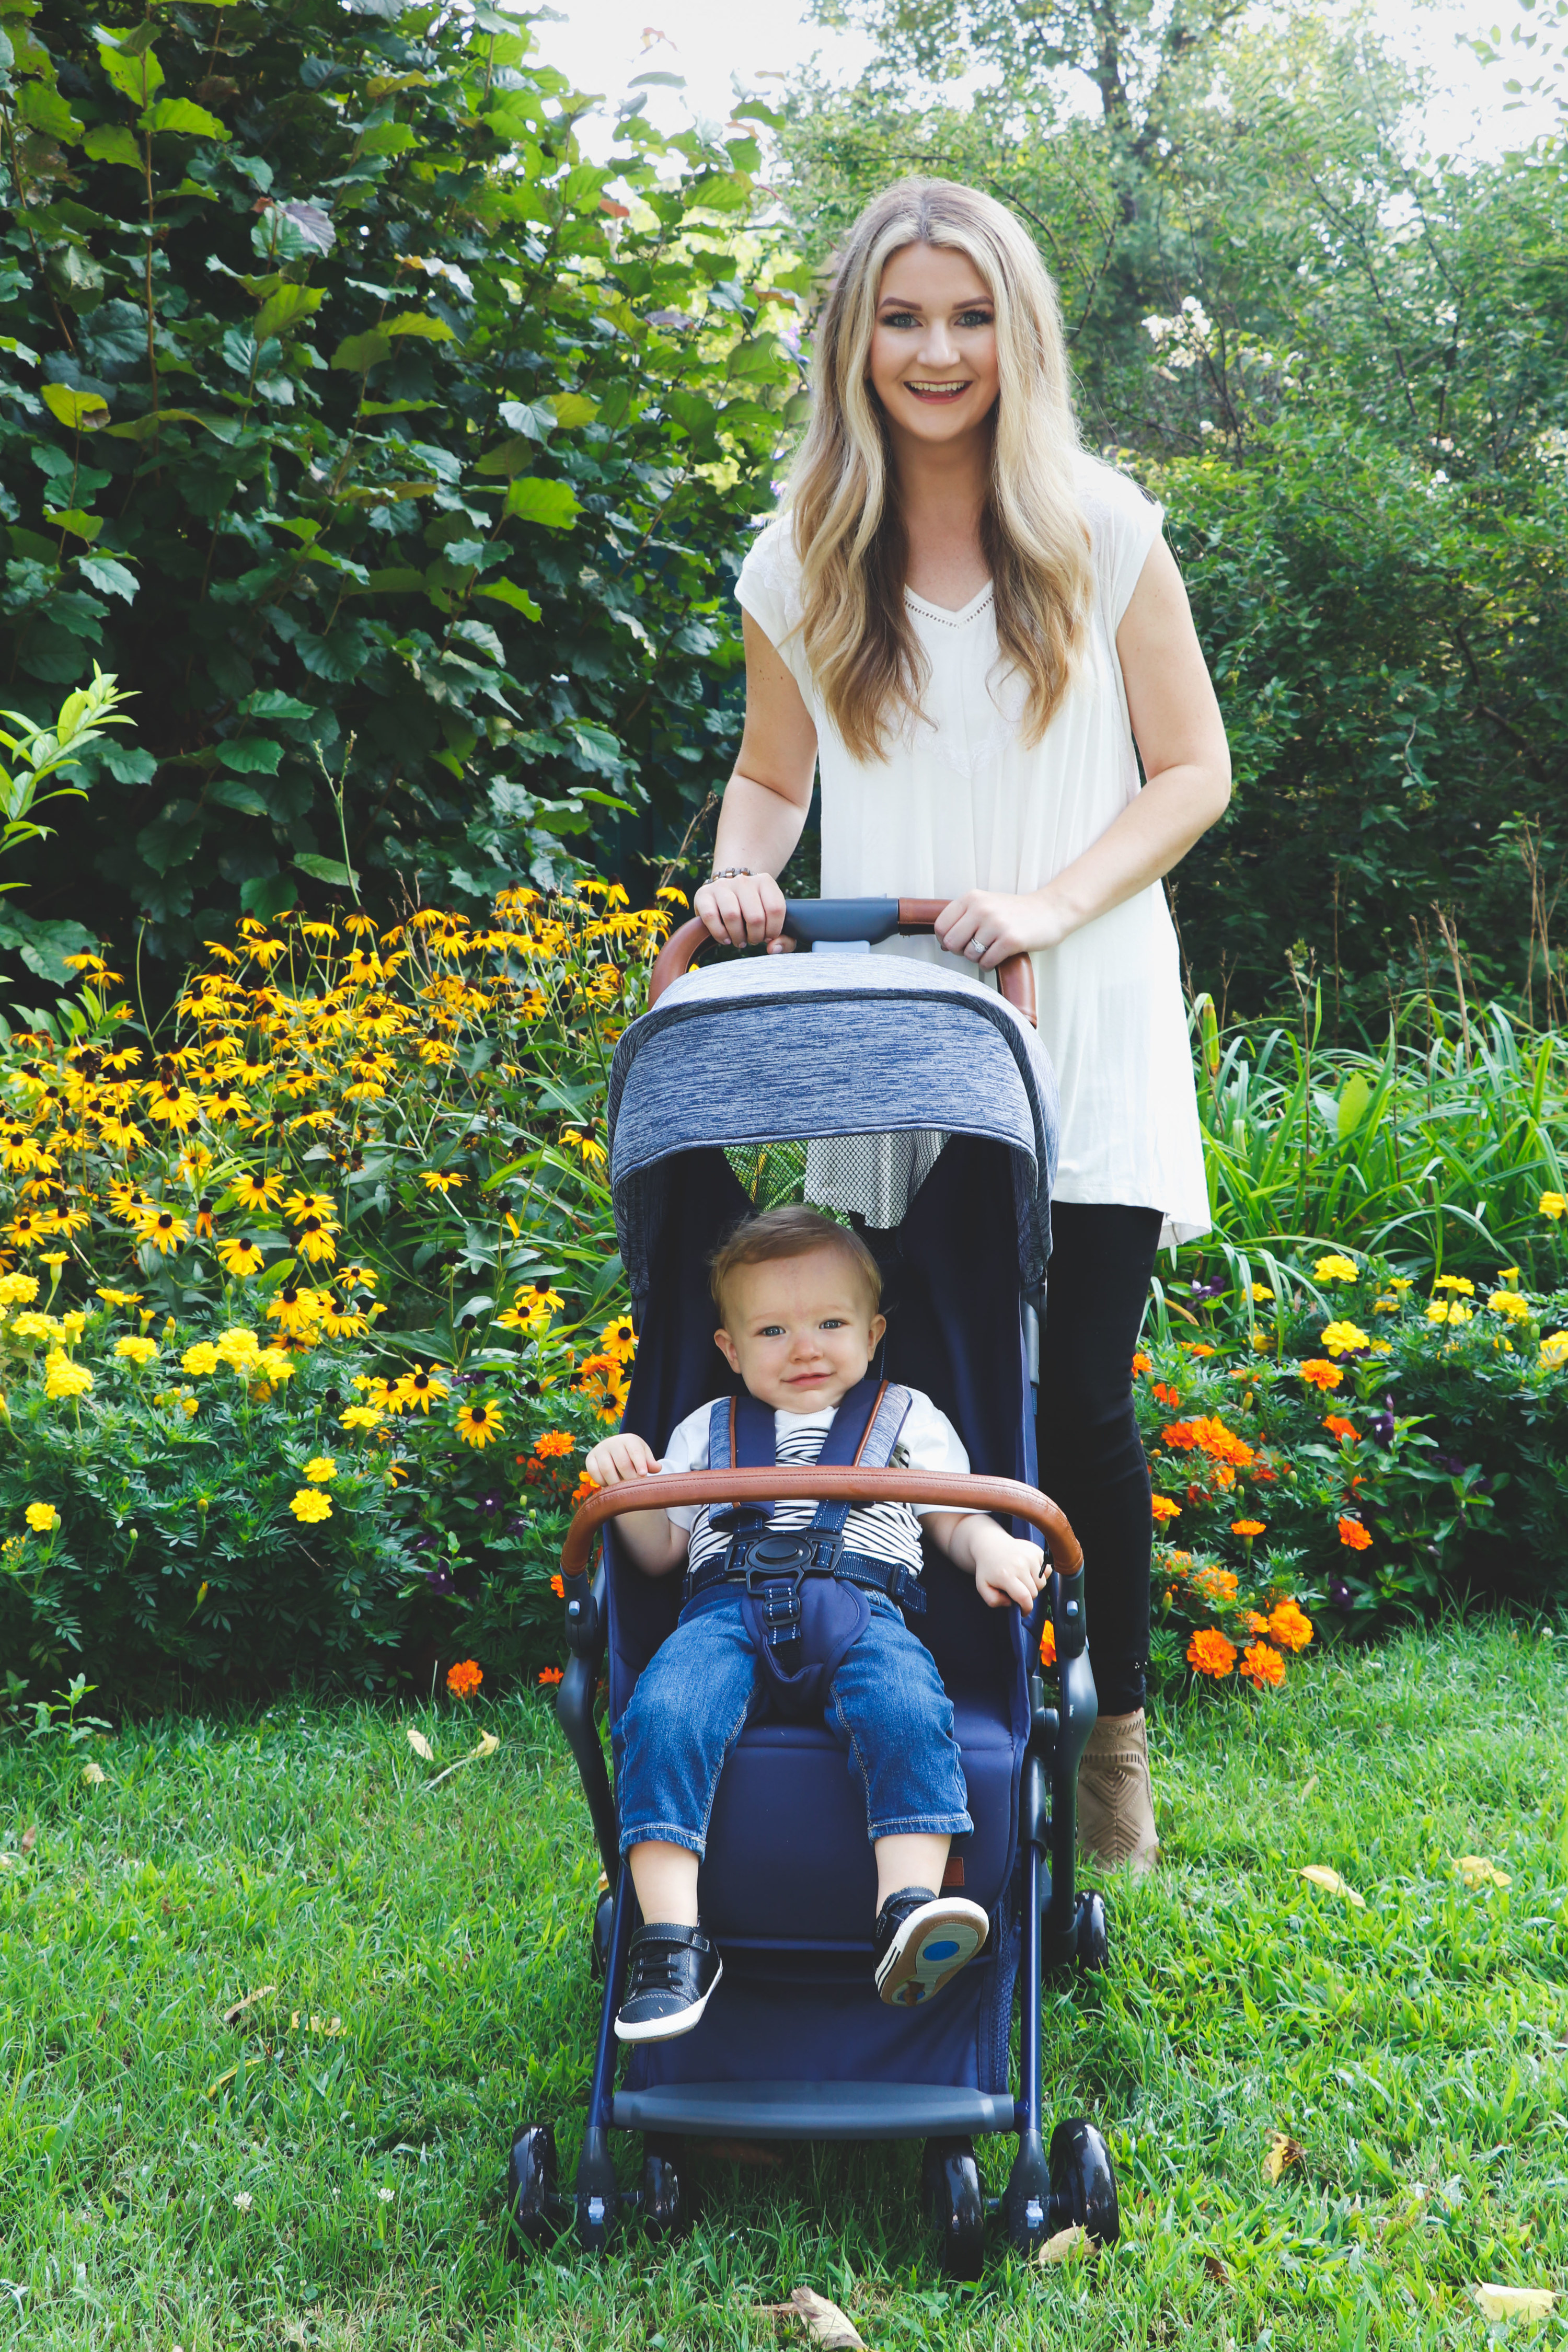 A model and baby using the stroller in a garden